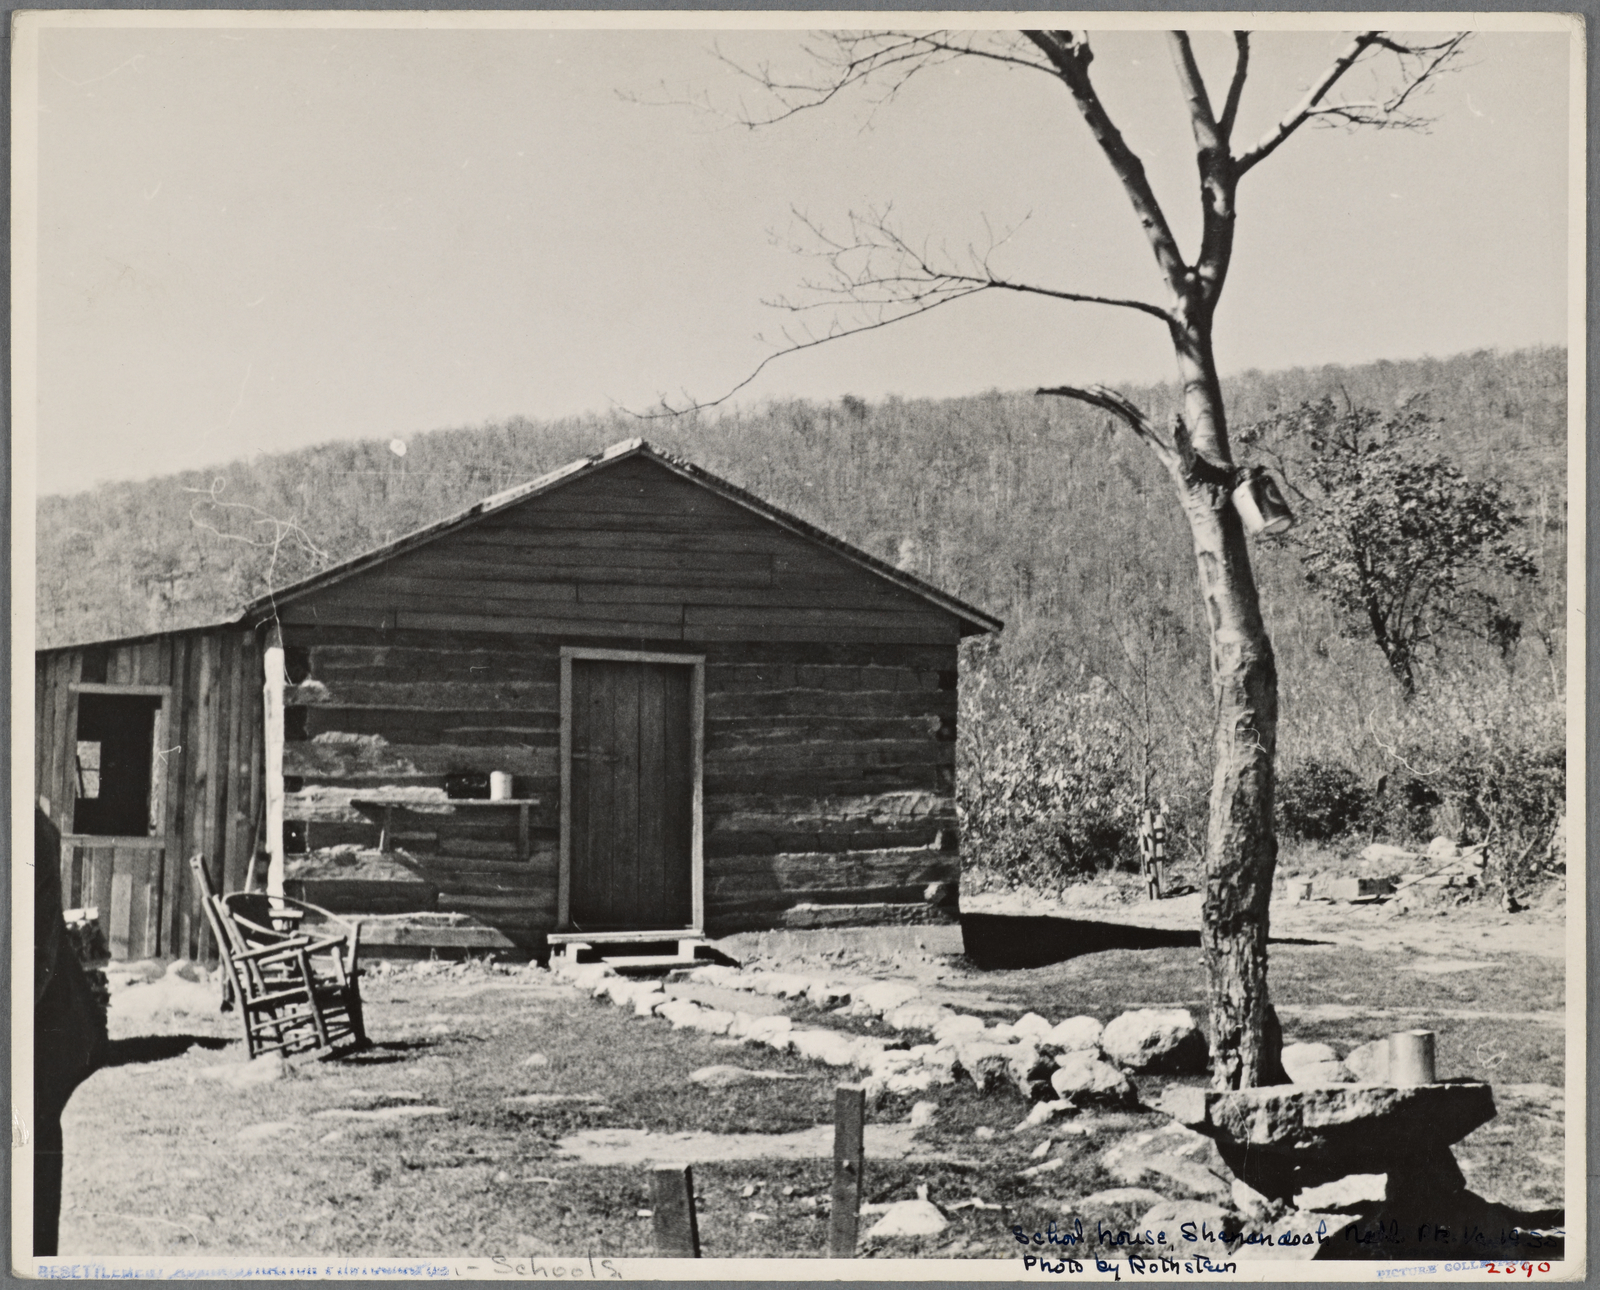 Schoolhouse at Corbin Hollow. Shenandoah National Park, Virginia. c. 1935